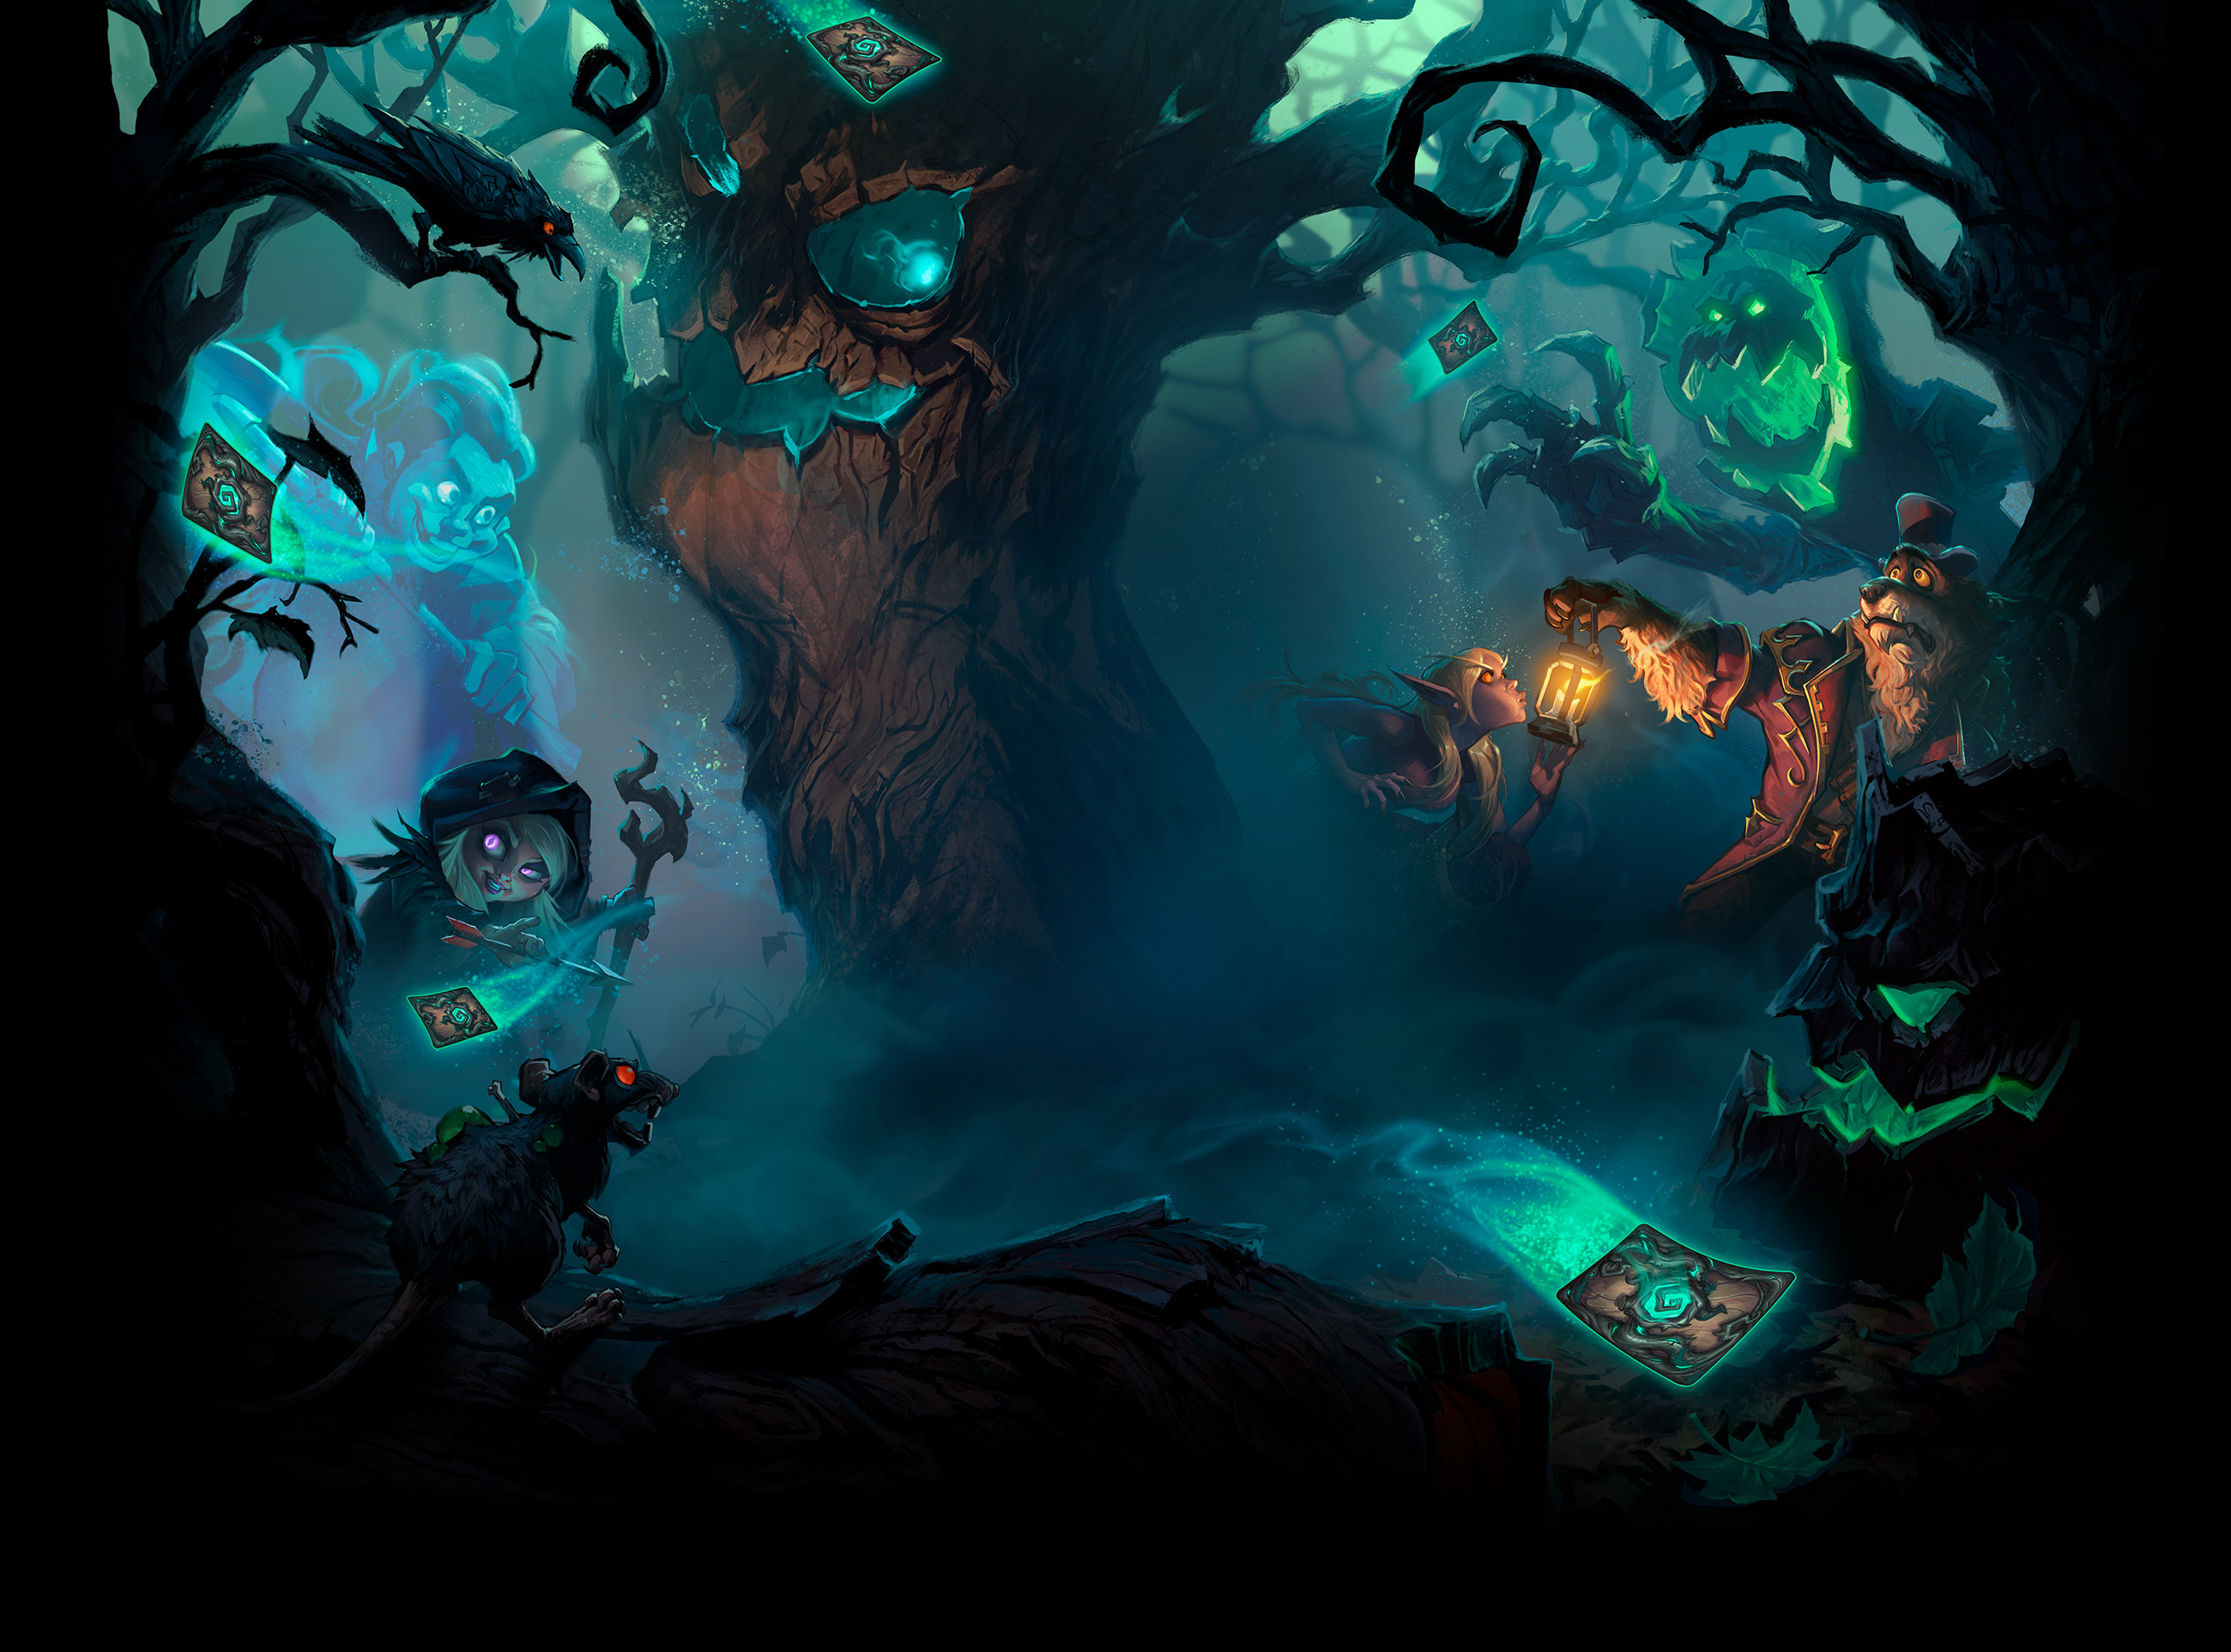 Players Can Unleash Their Inner Beast in Upcoming Expansion The Witchwood